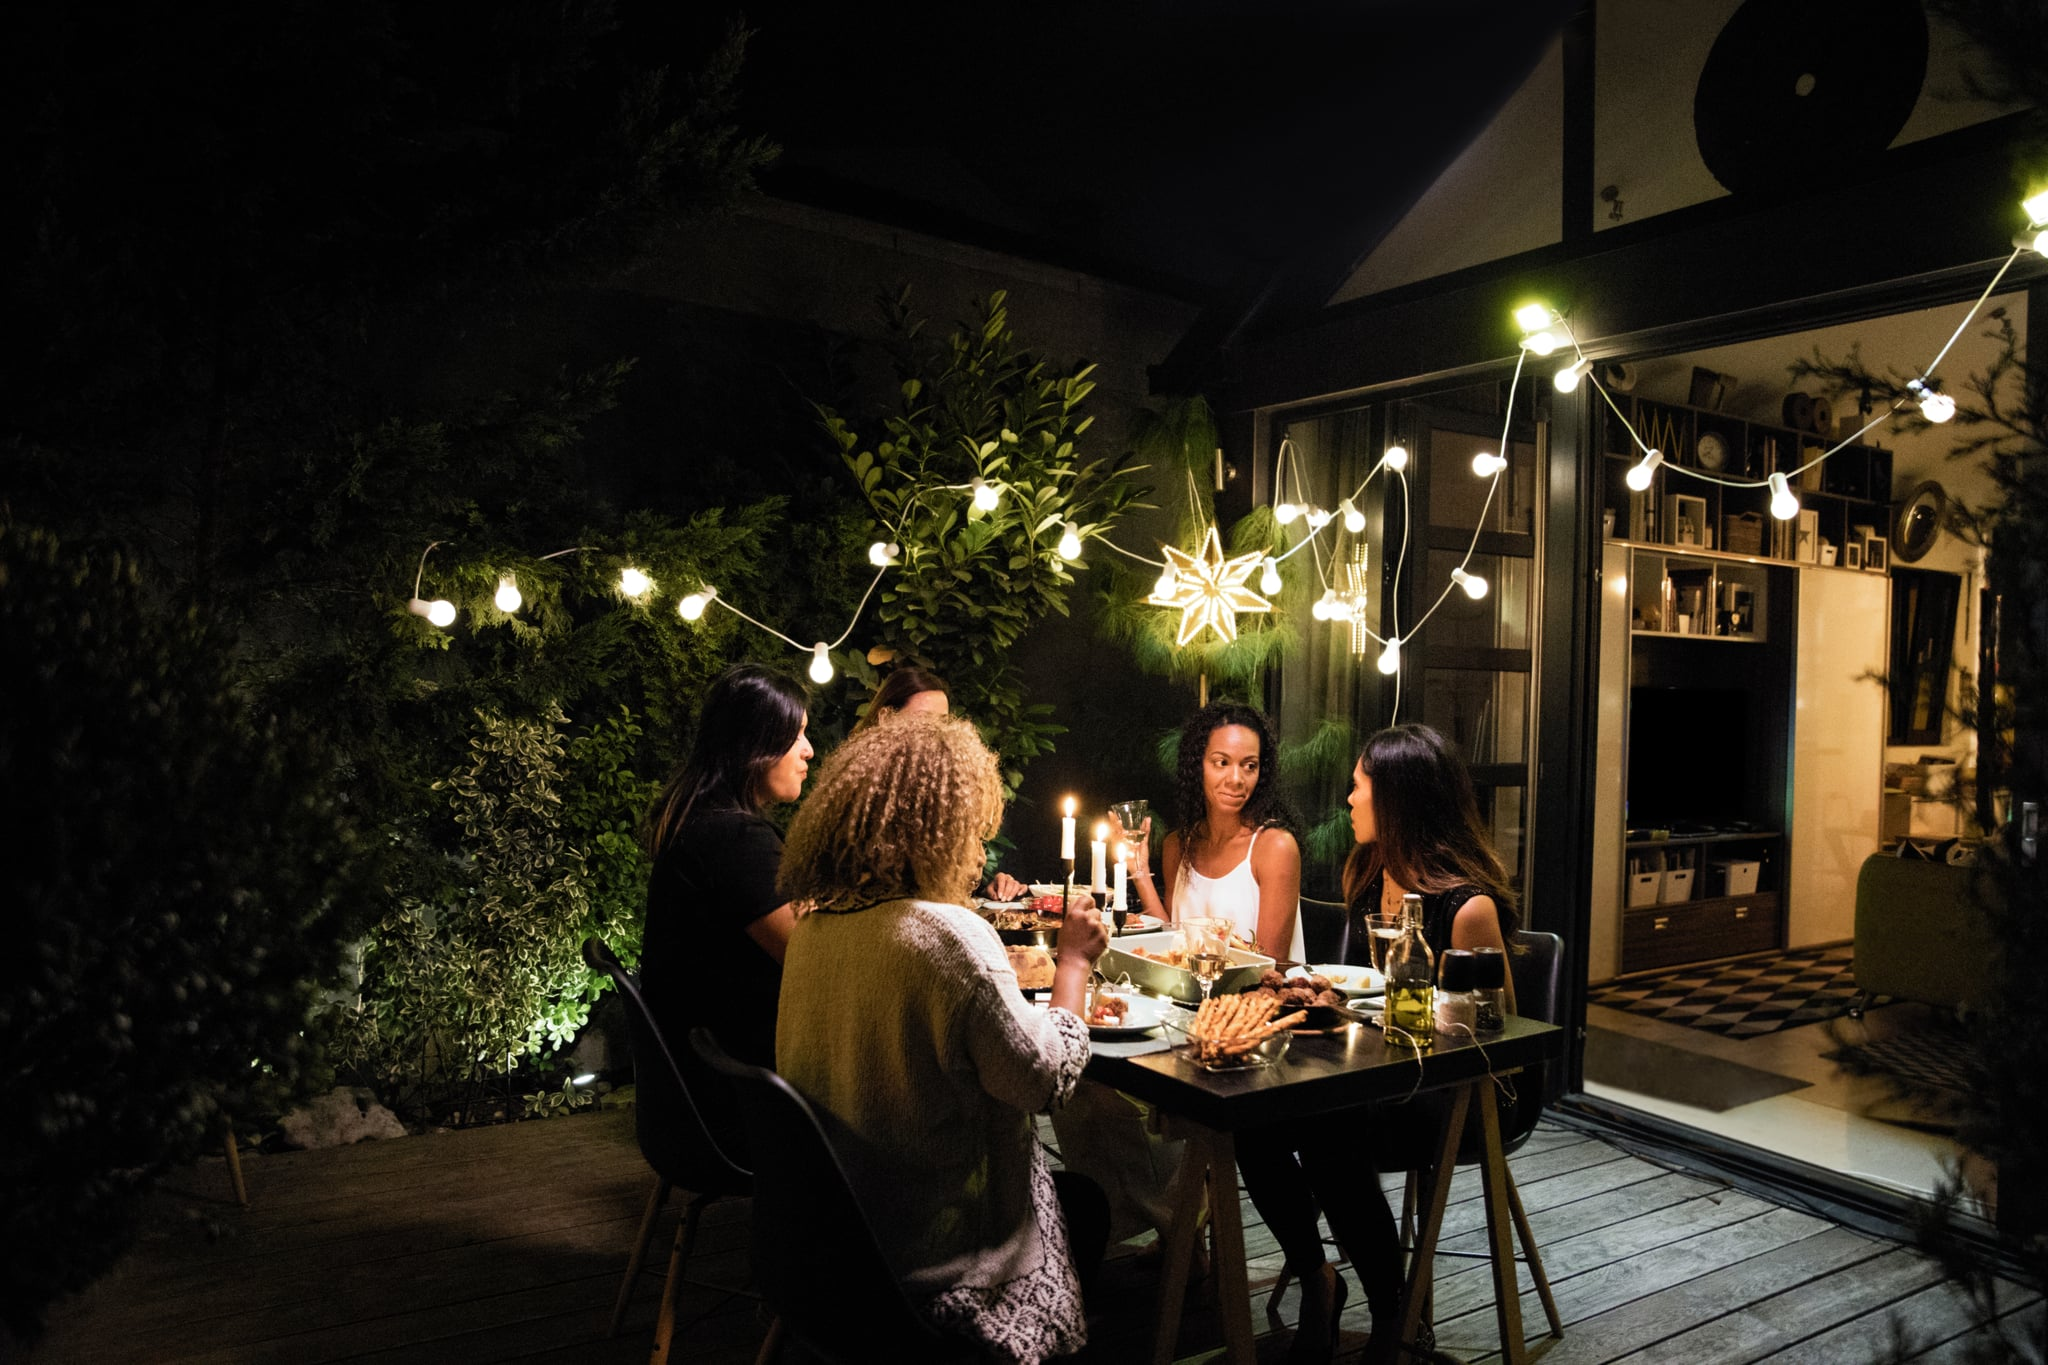 Latino women have dinner party at house yard